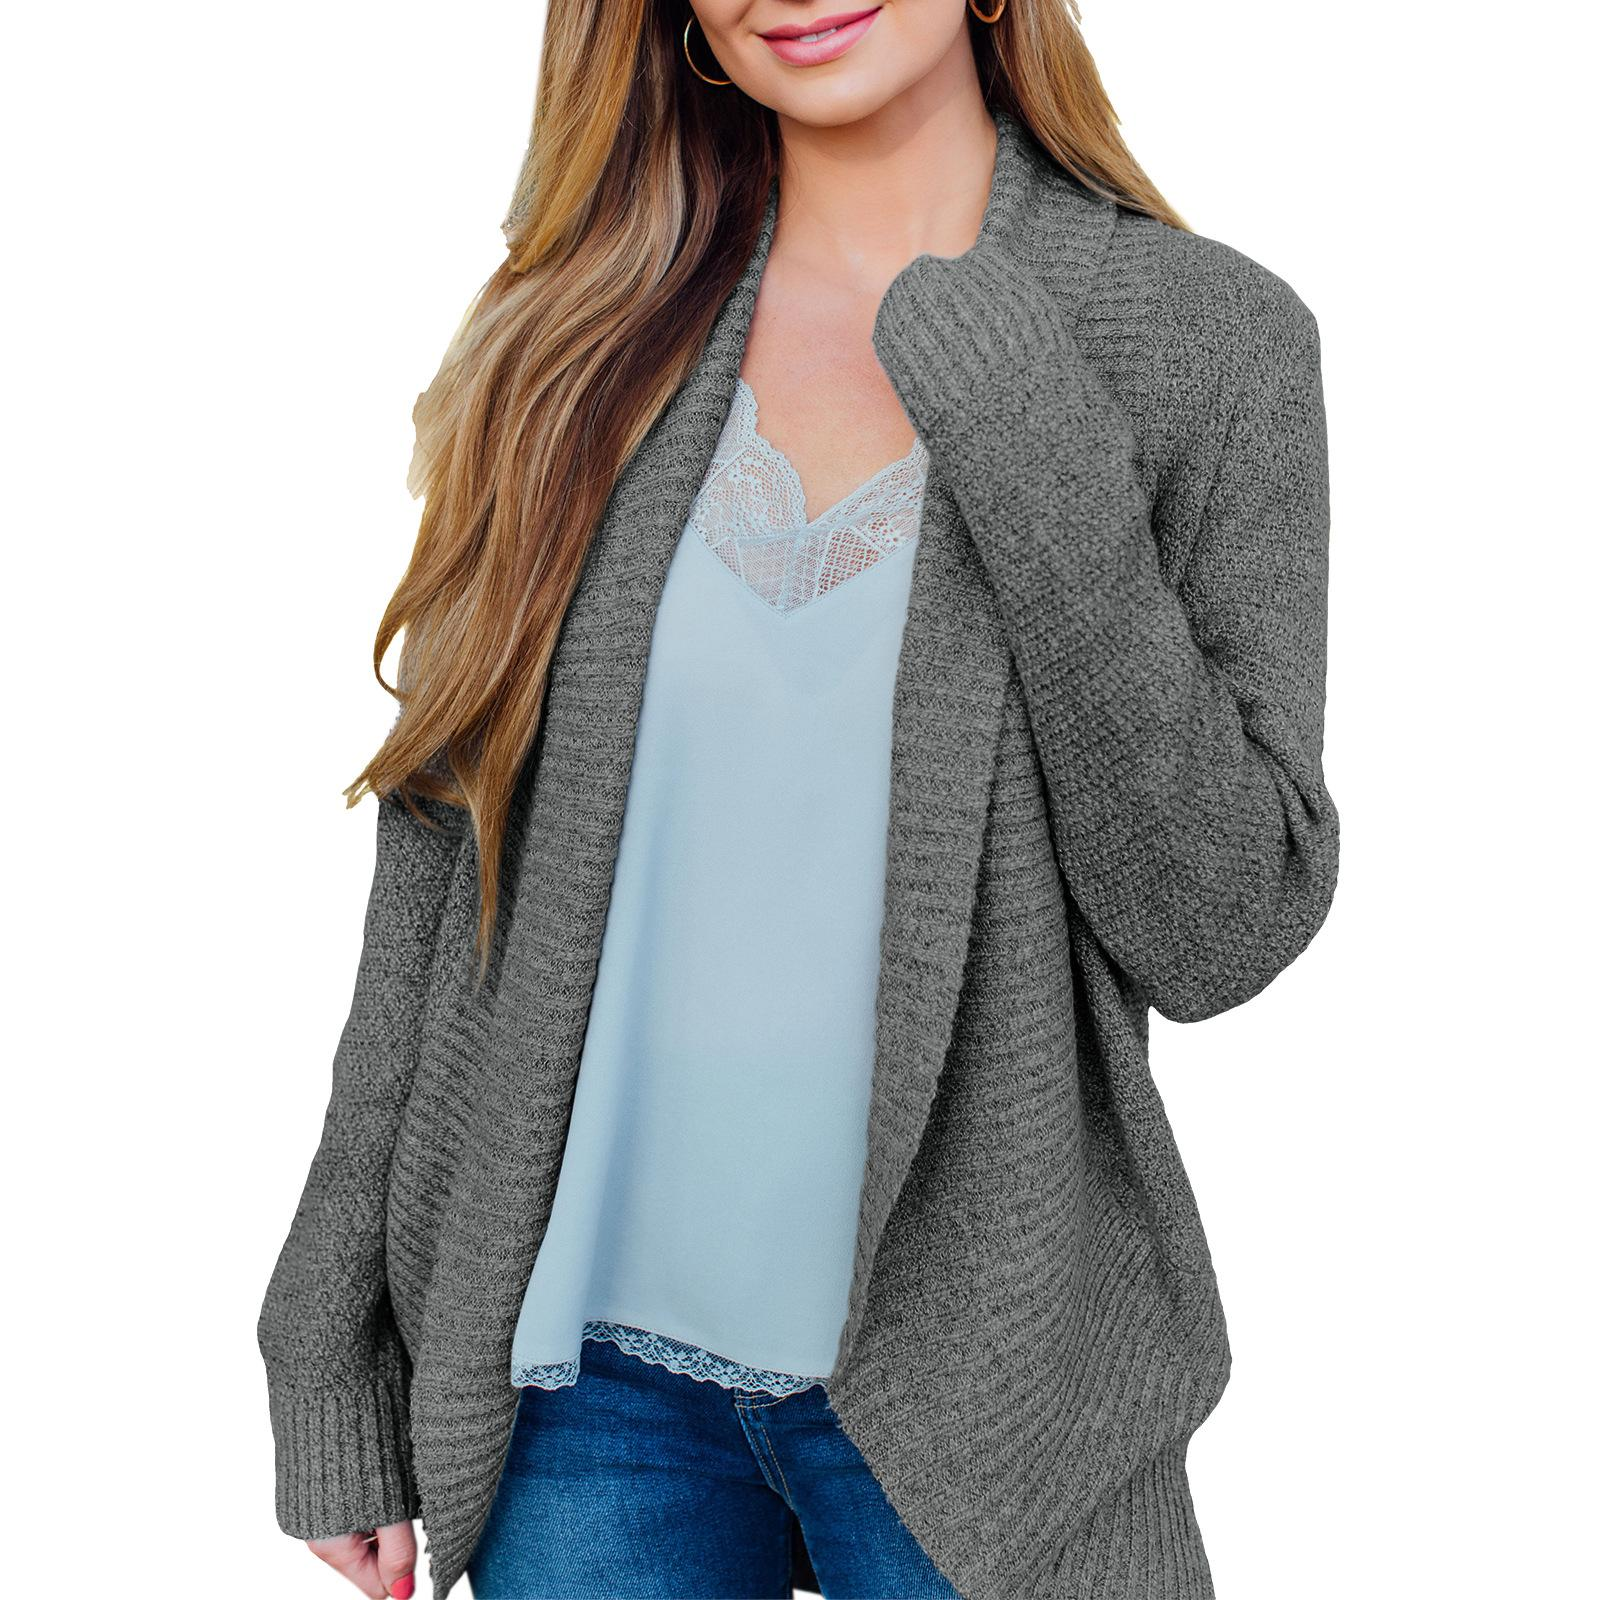 2021 new Women's sweaters retro loose thick needle cardigan autumn and winter jacket